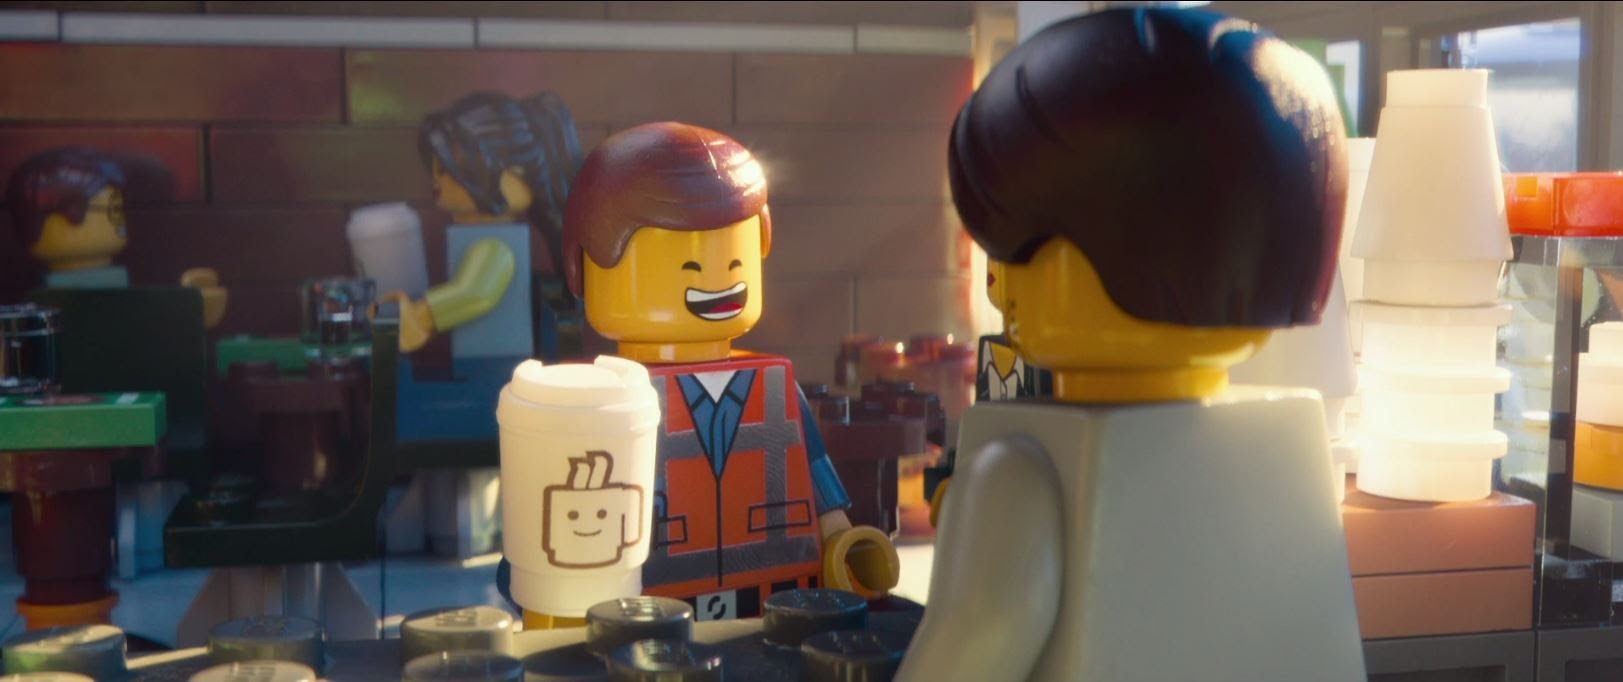 Lego Movie Screenshot with light coming in from right side